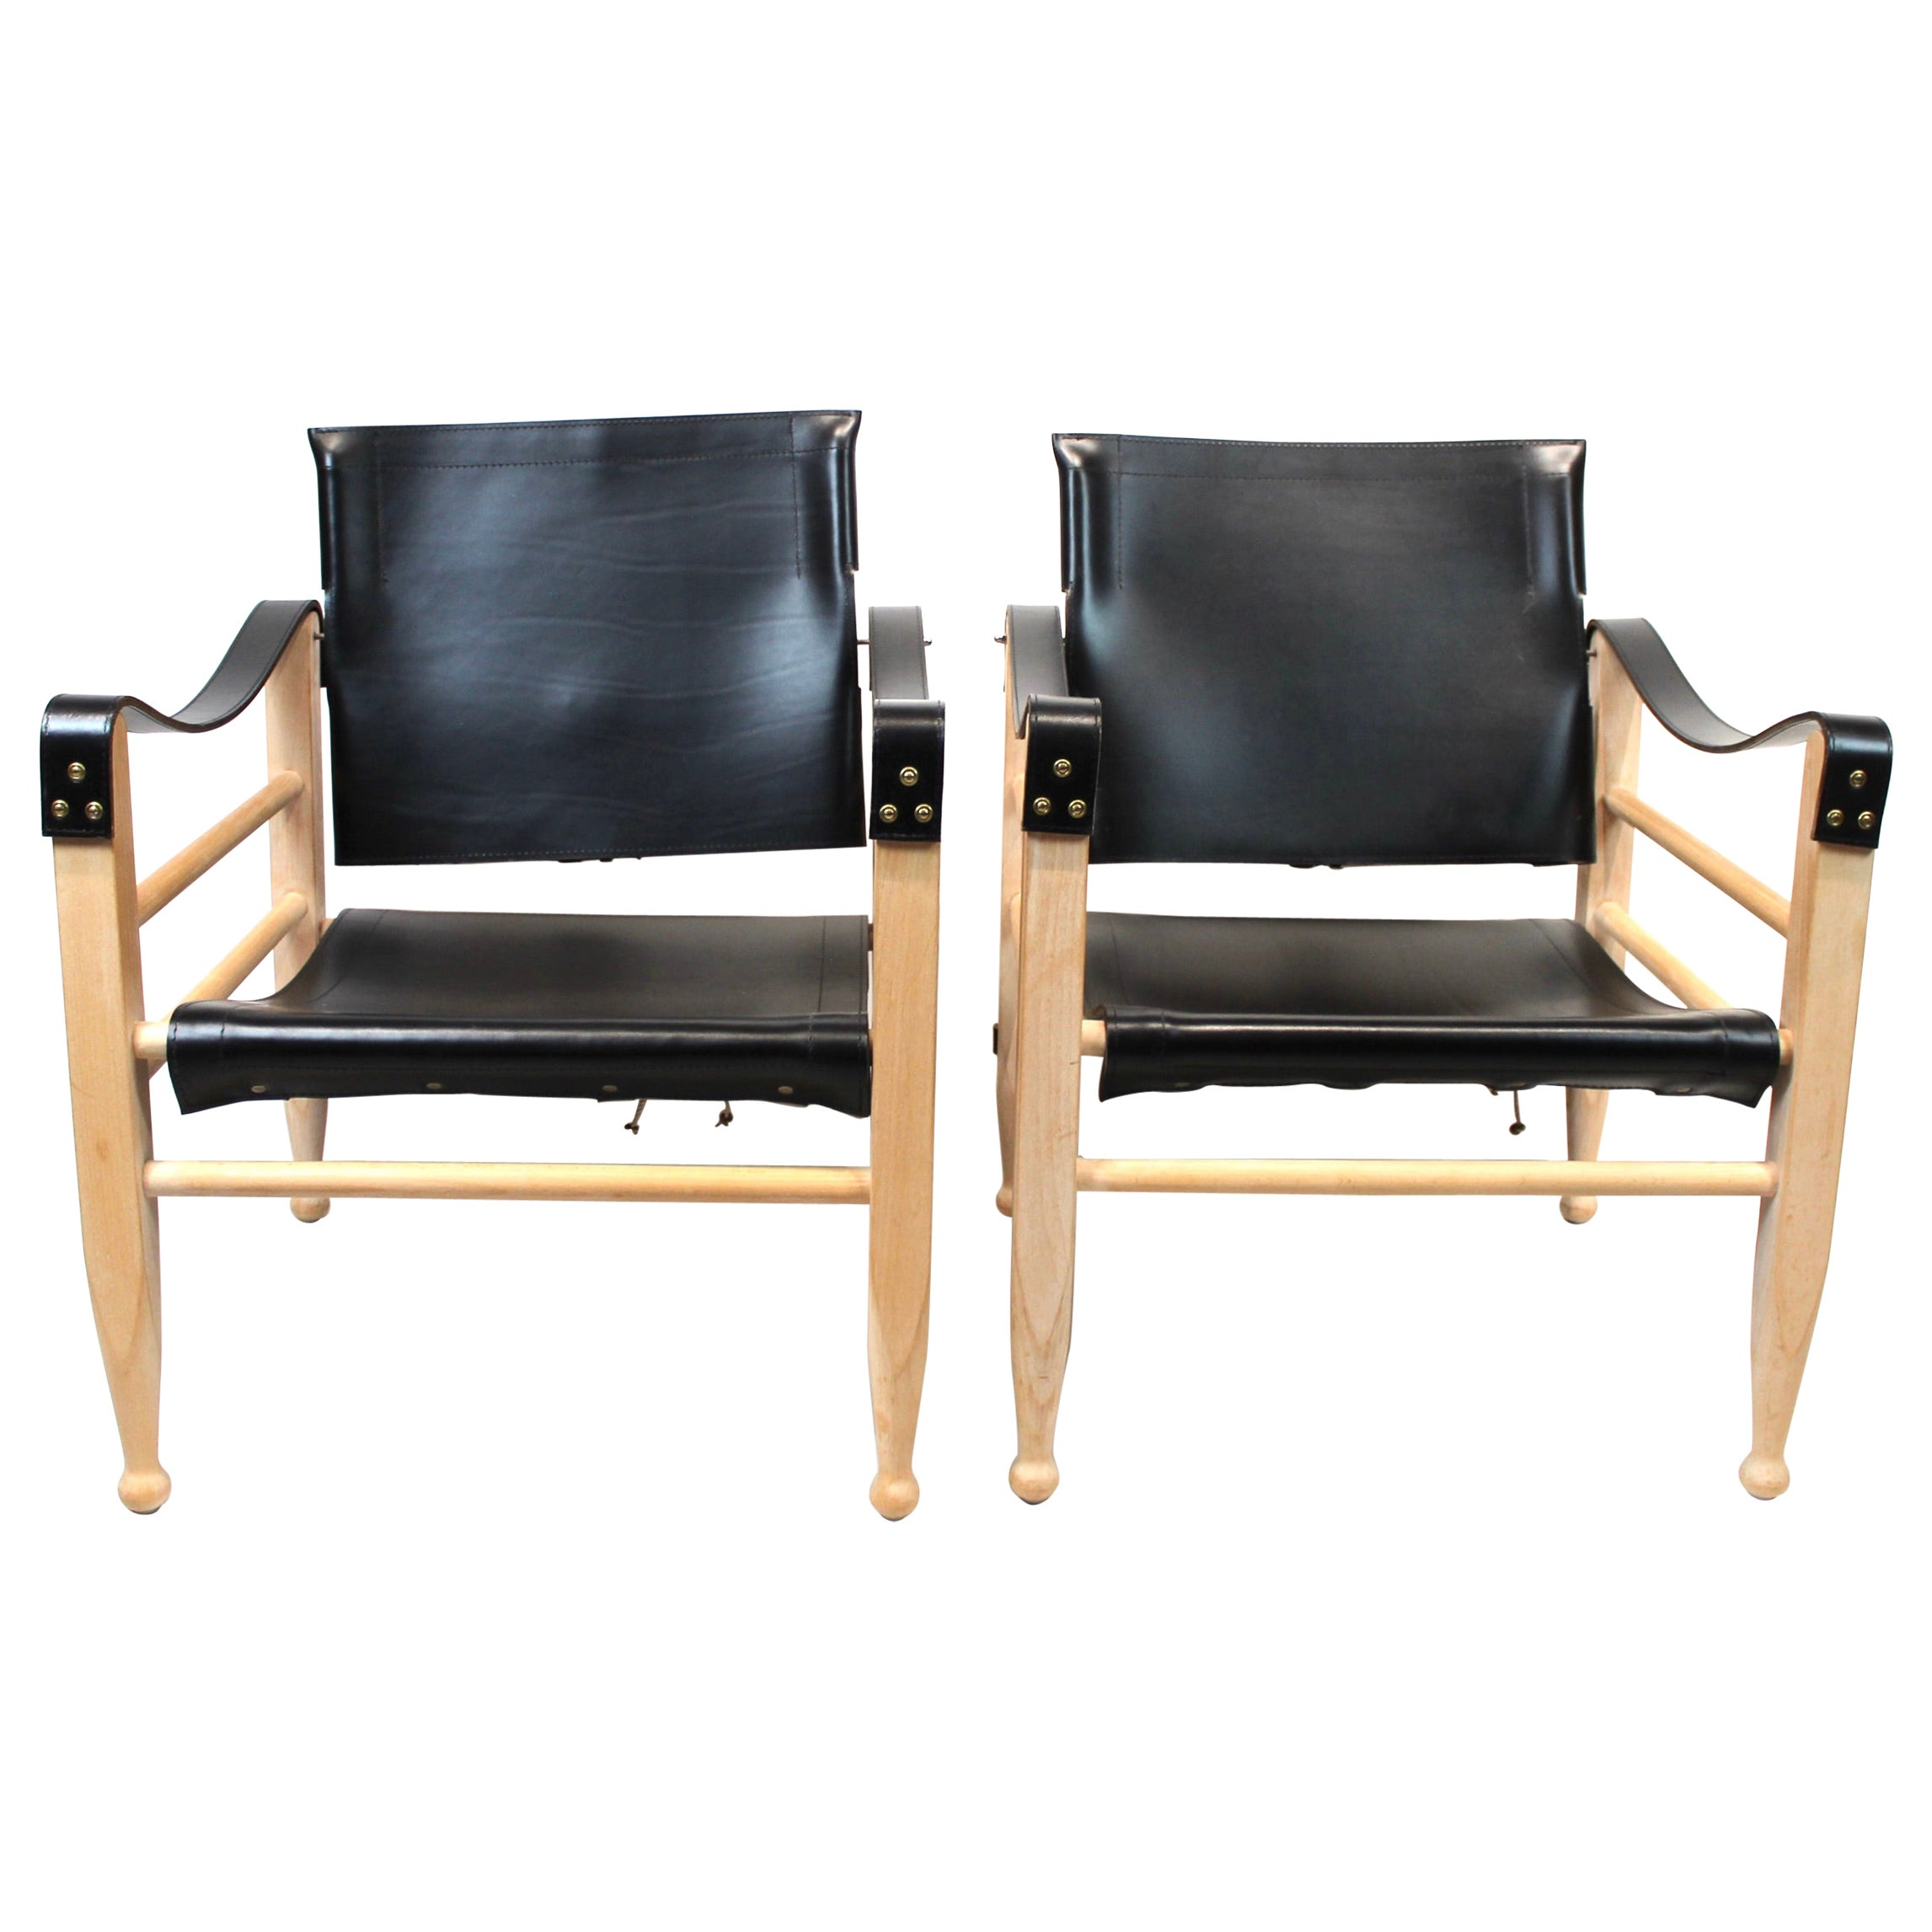 Pair of Safari Chairs by Aage Bruun & Son of Black Leather, 1960s